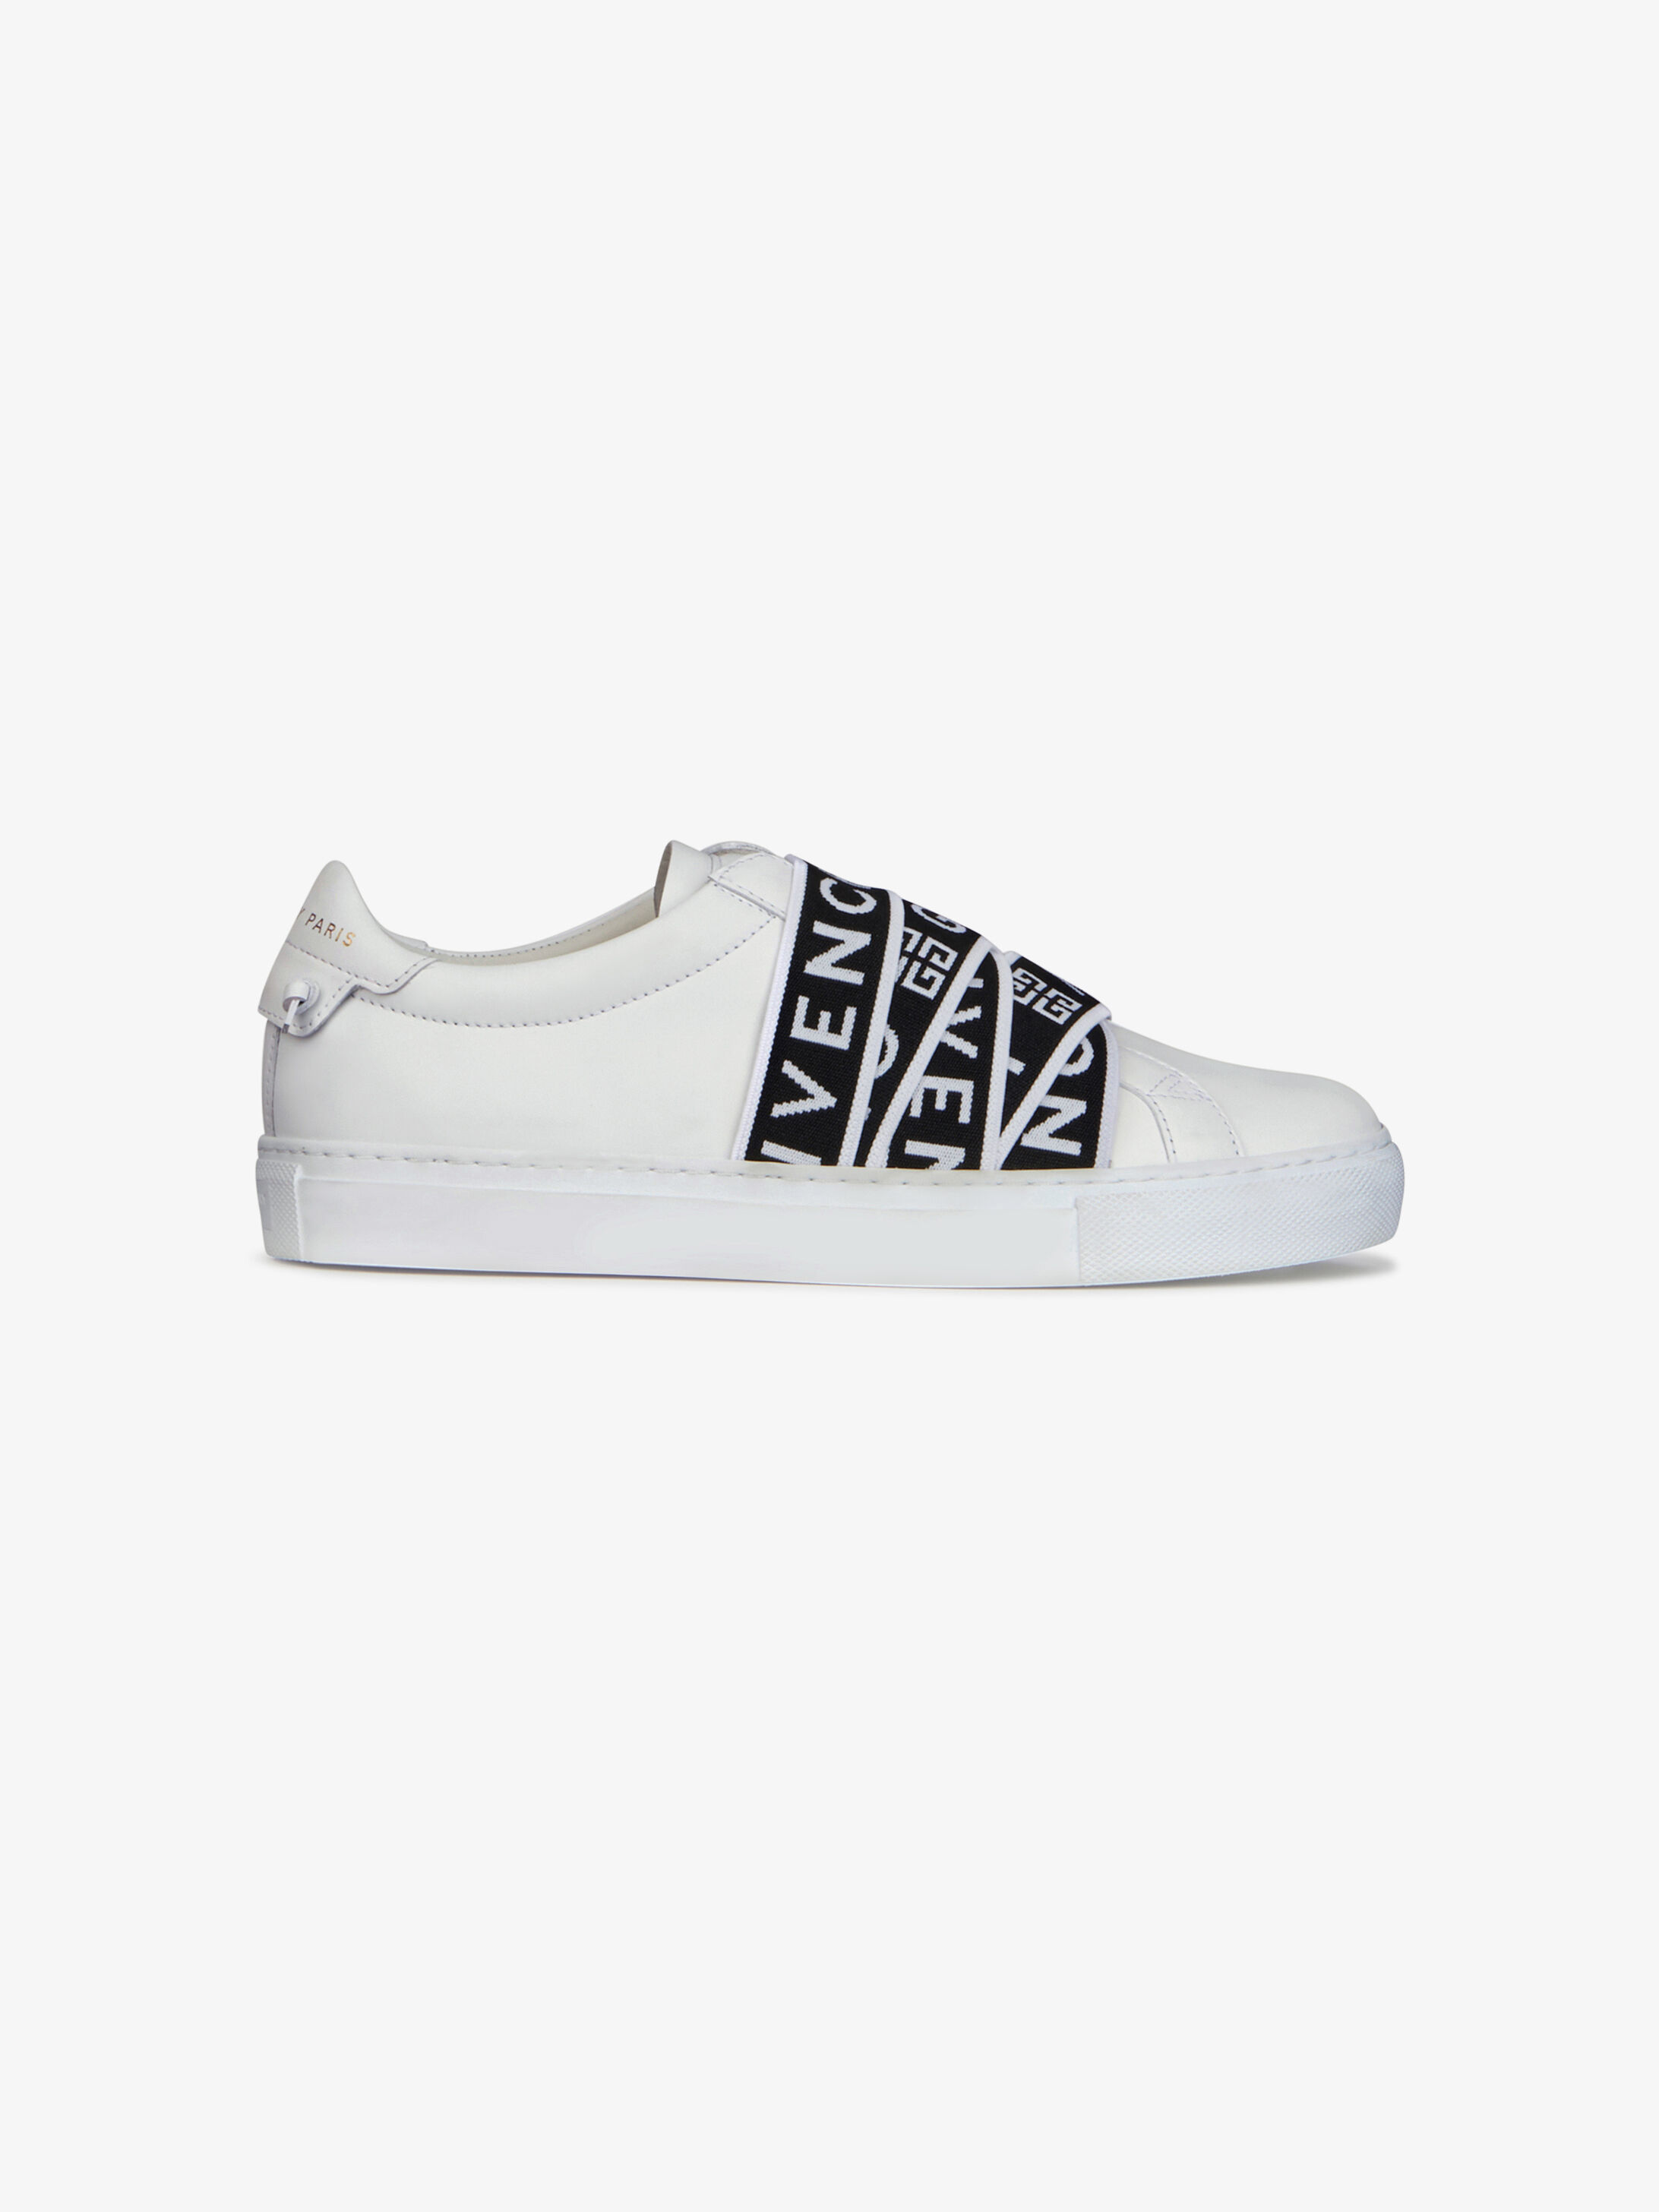 4162901aff Women s Sneakers collection by Givenchy.